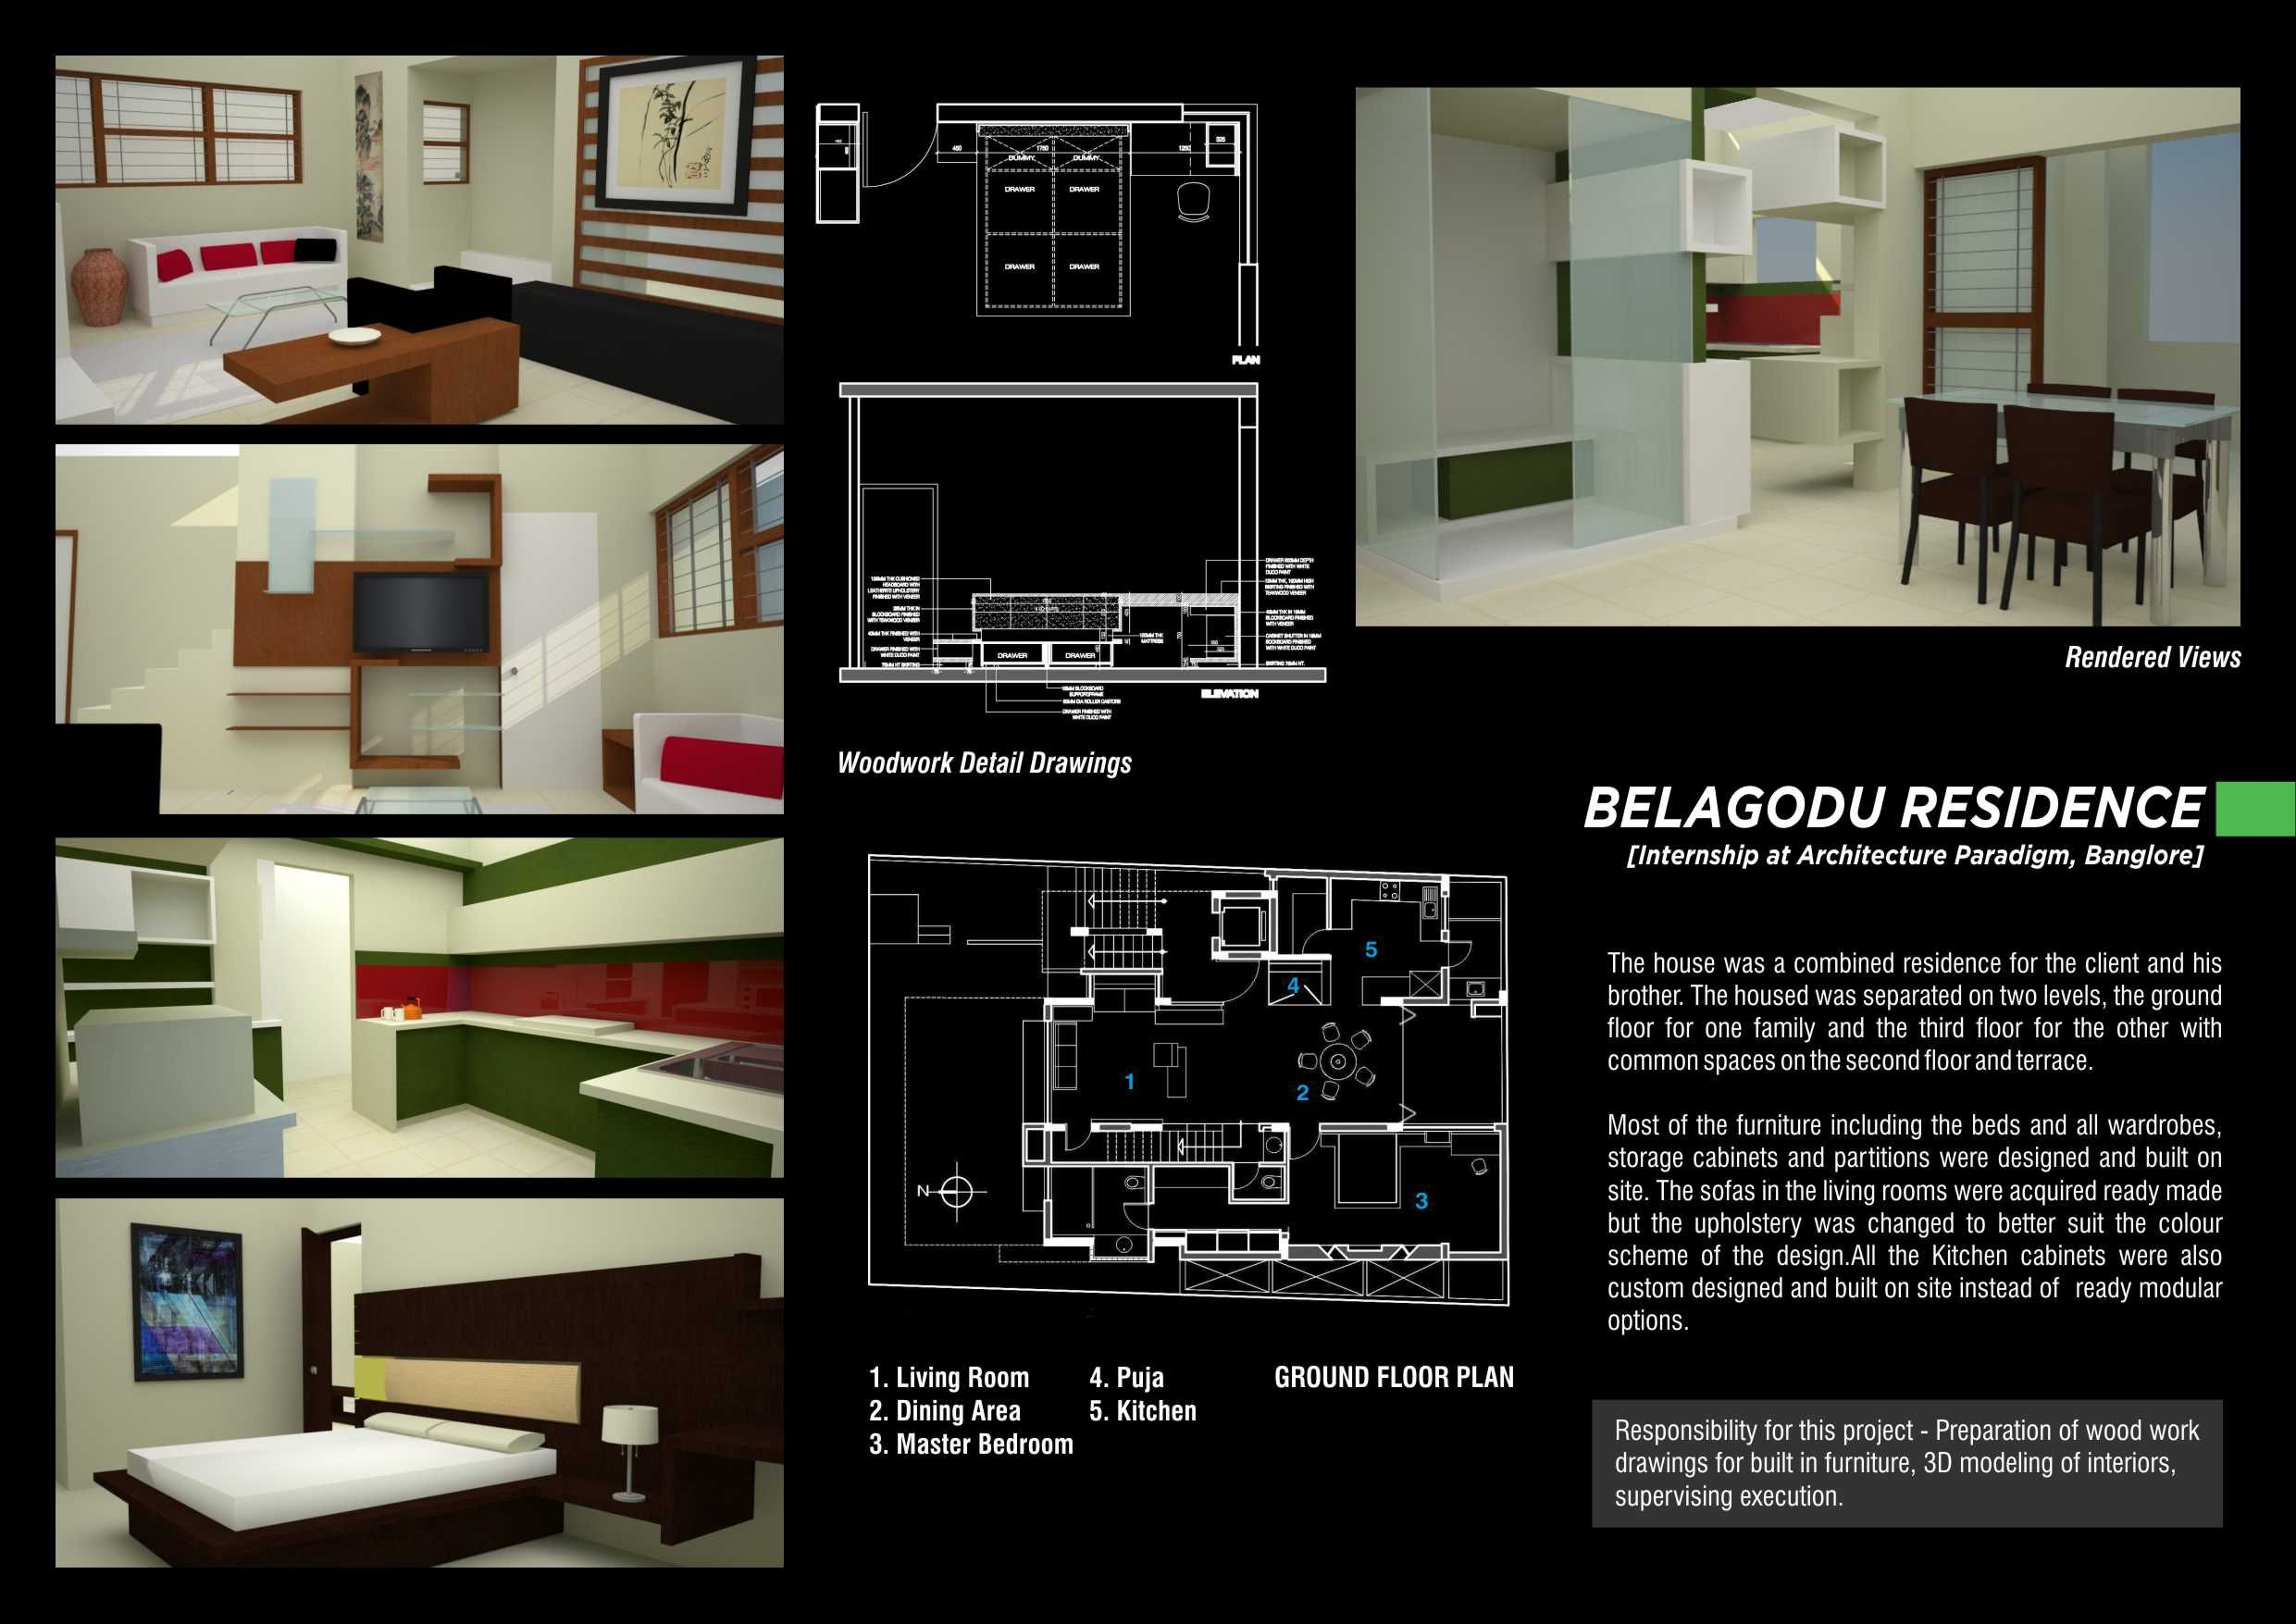 interior design internships new portfolio by indrajit satbhai at coroflot - Interior Design Portfolio Ideas